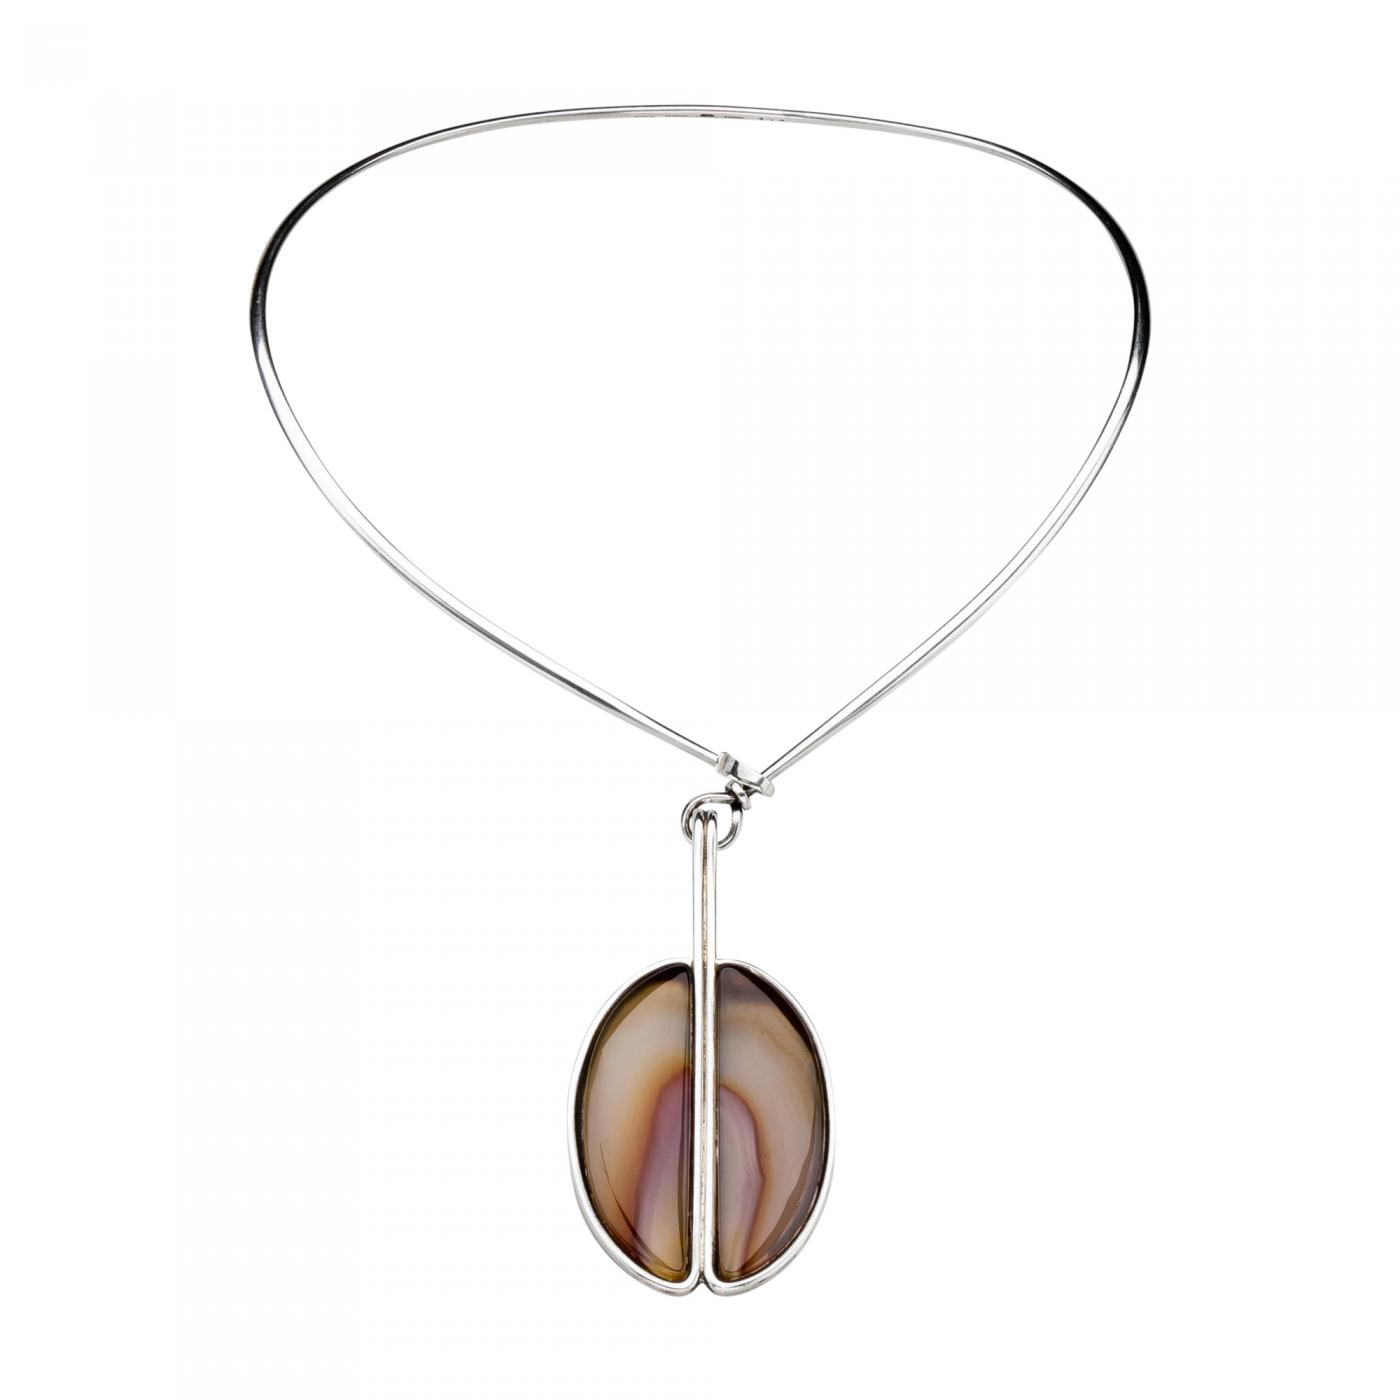 Georg jensen georg jensen torun necklace with framed banded agate listings jewelry necklaces pendants drop pendant georg jensen aloadofball Images